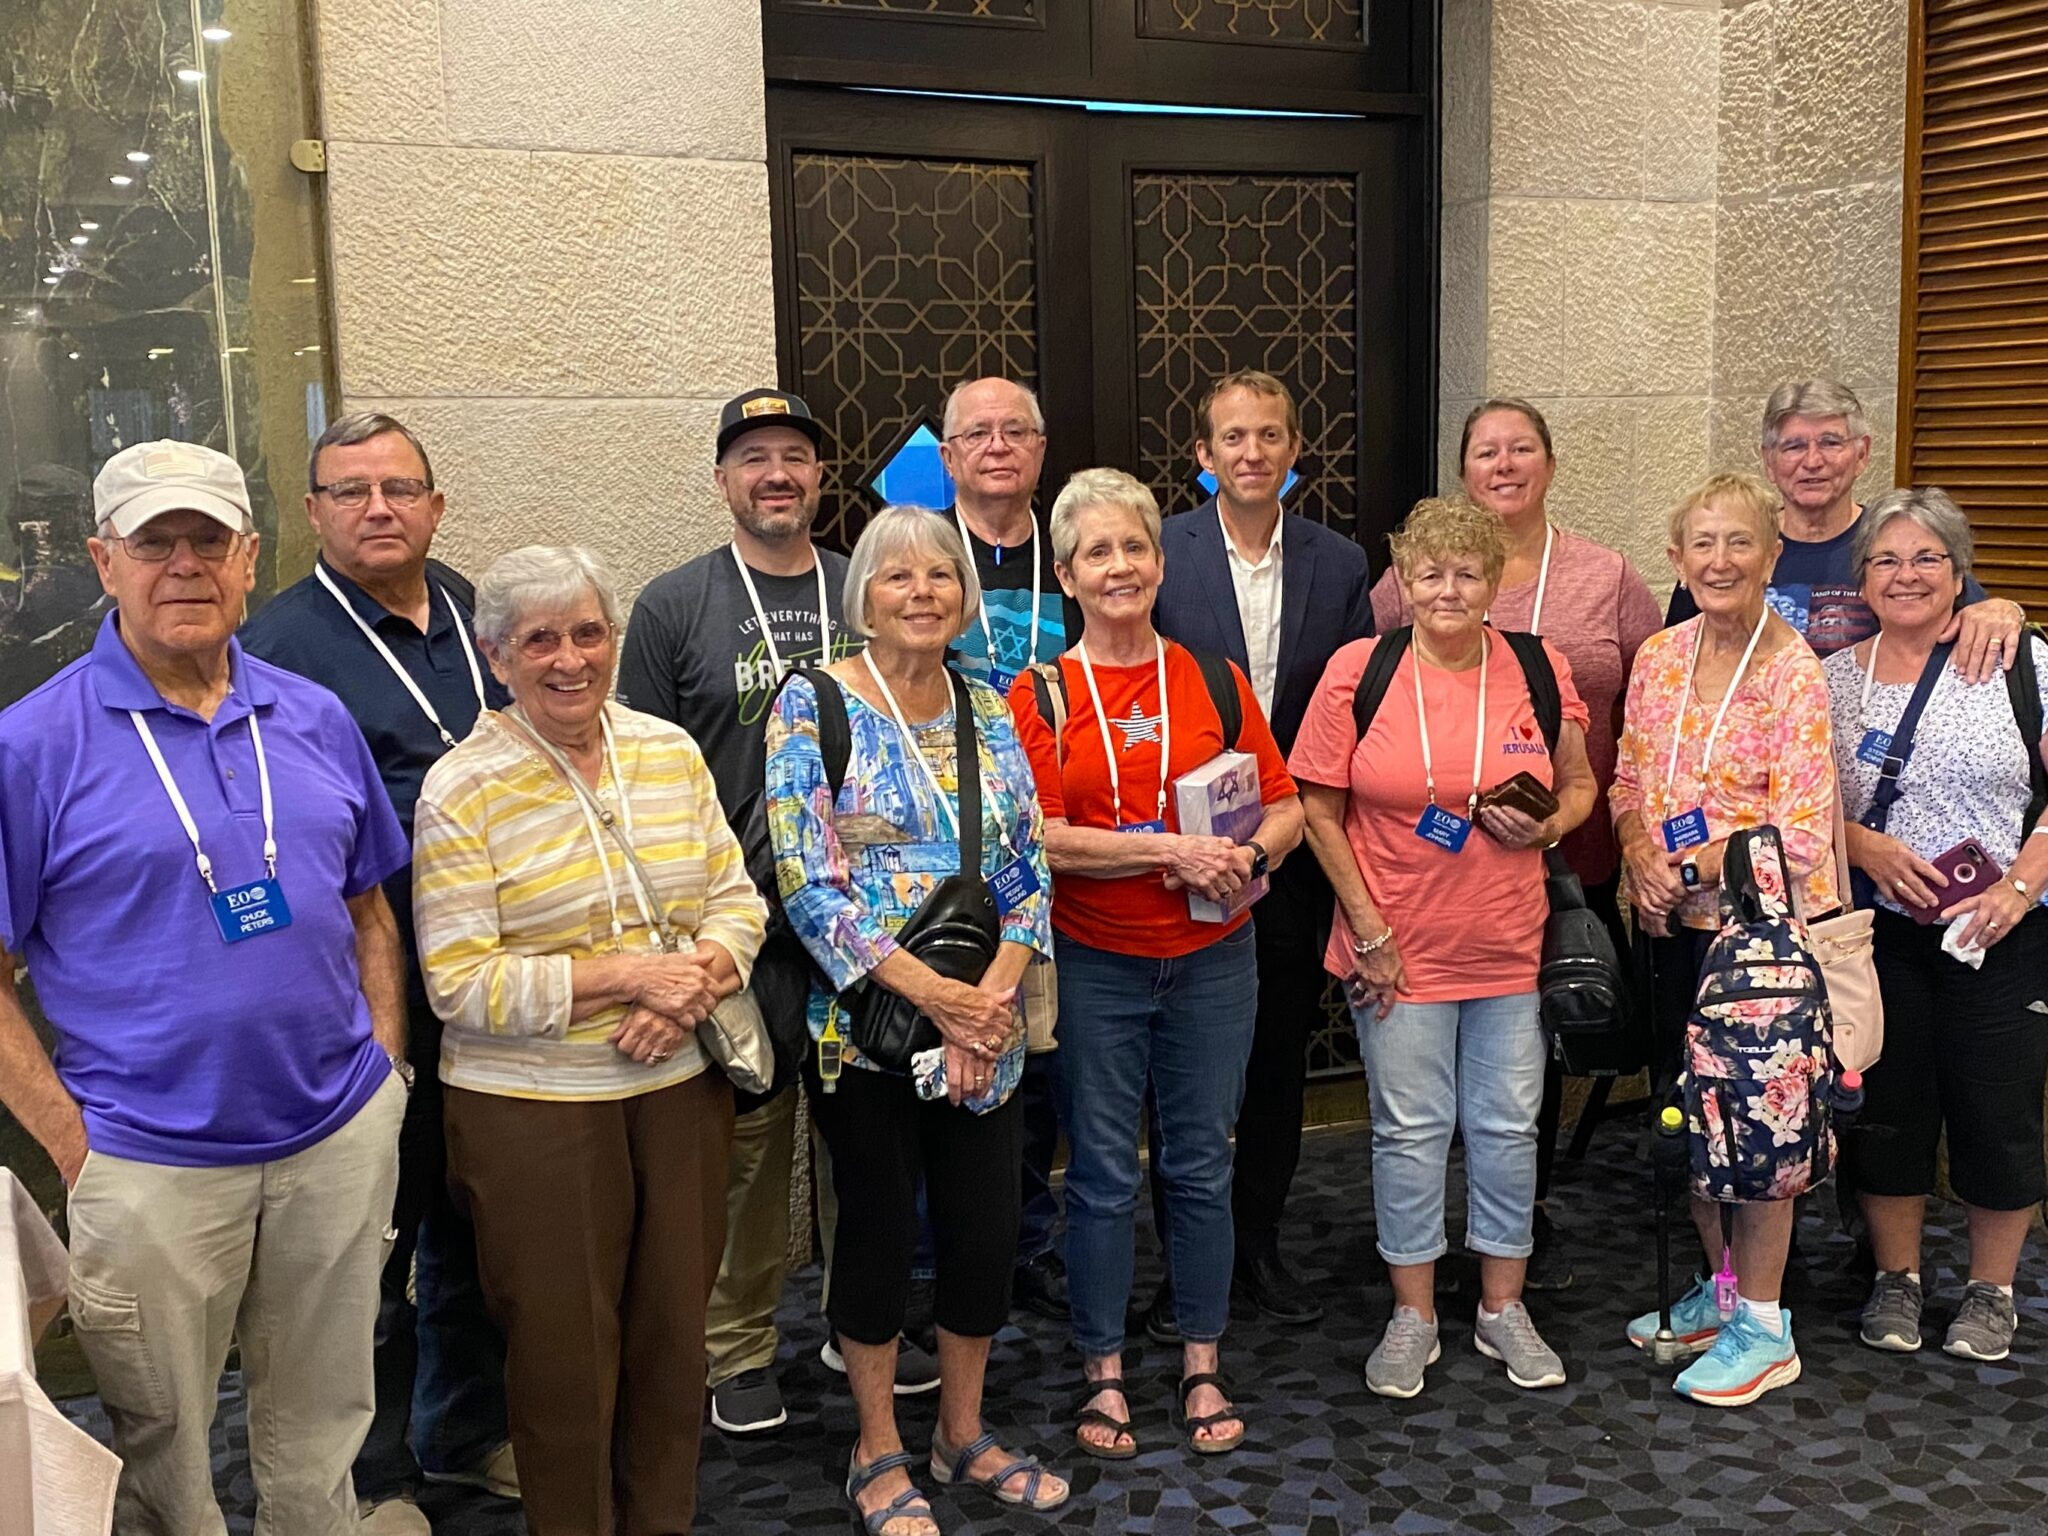 Yesterday, Rabbi Tuly Weisz welcomed a pioneering group of Christian tourists to Israel.